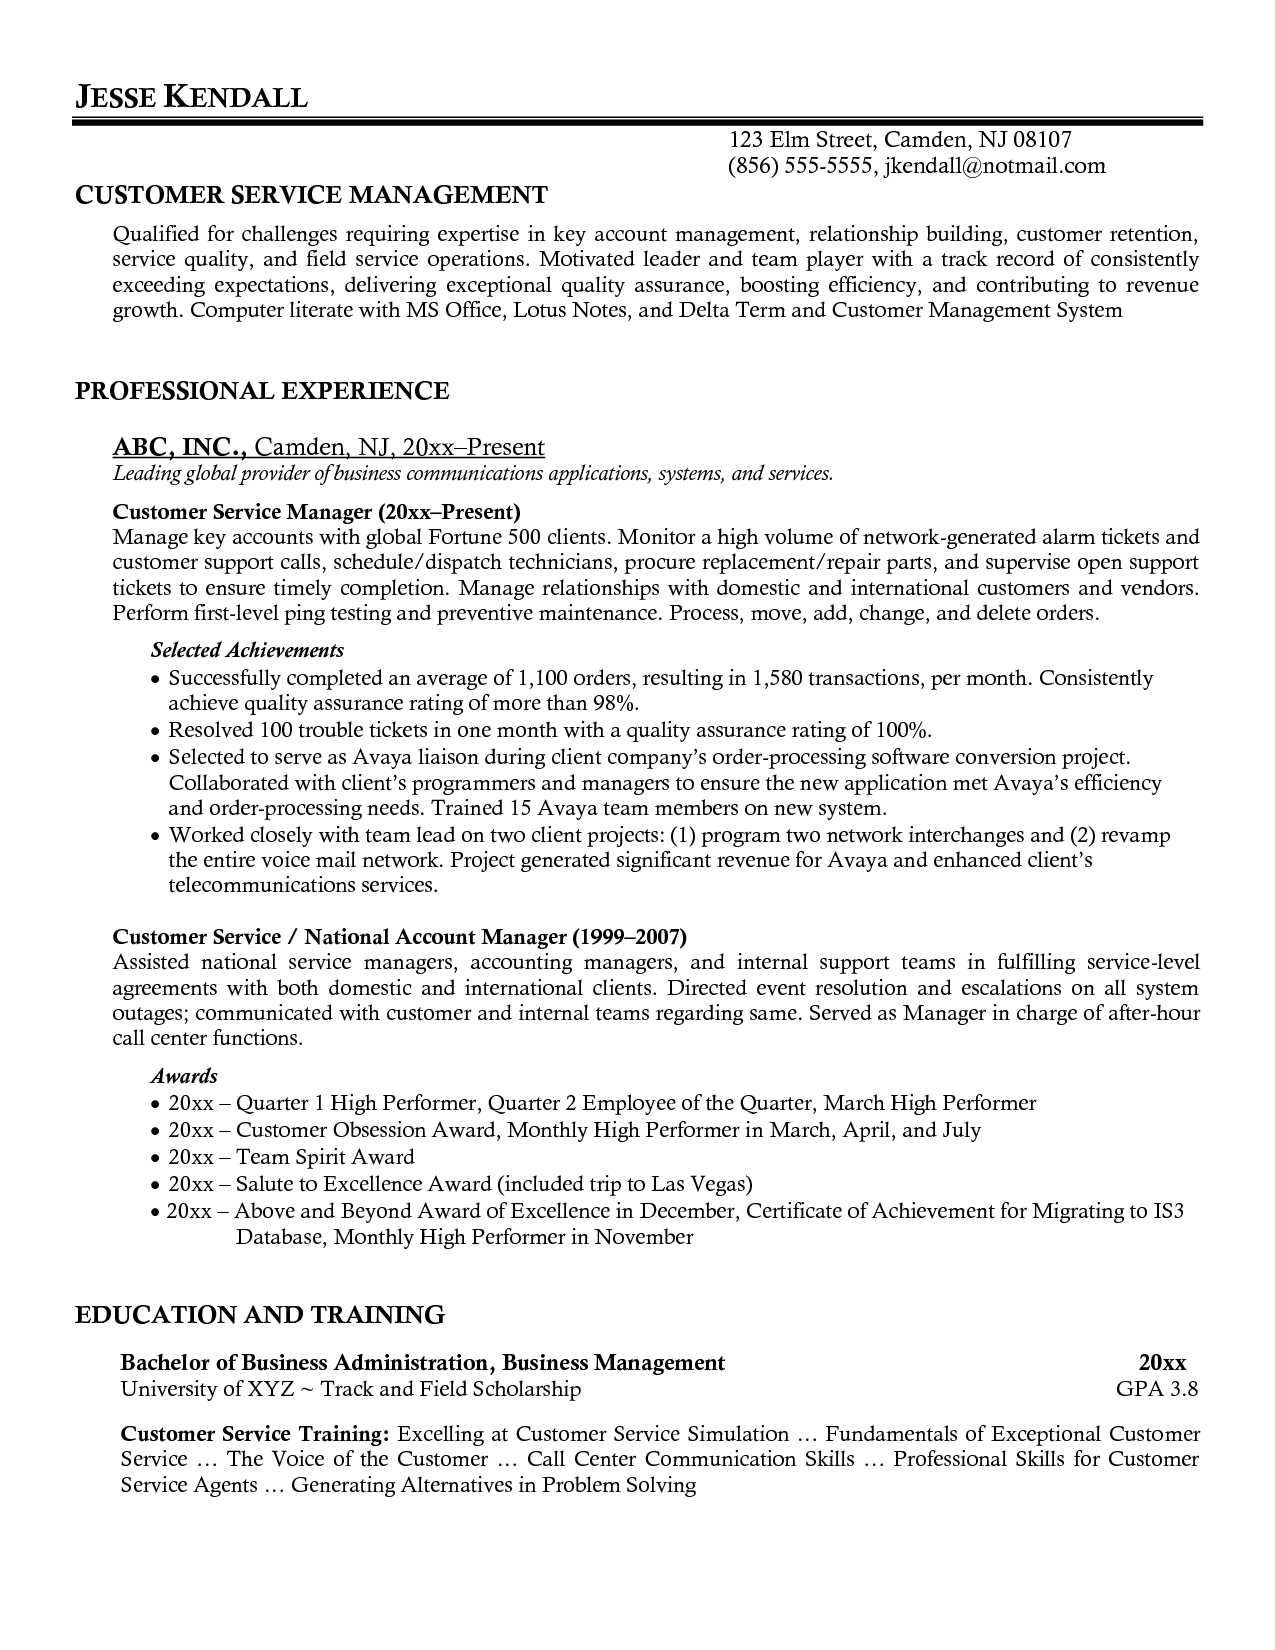 Certified Professional Resume Writers Canada Executive Application Letter  For Ojt Accounting Students  Accounting Major Resume